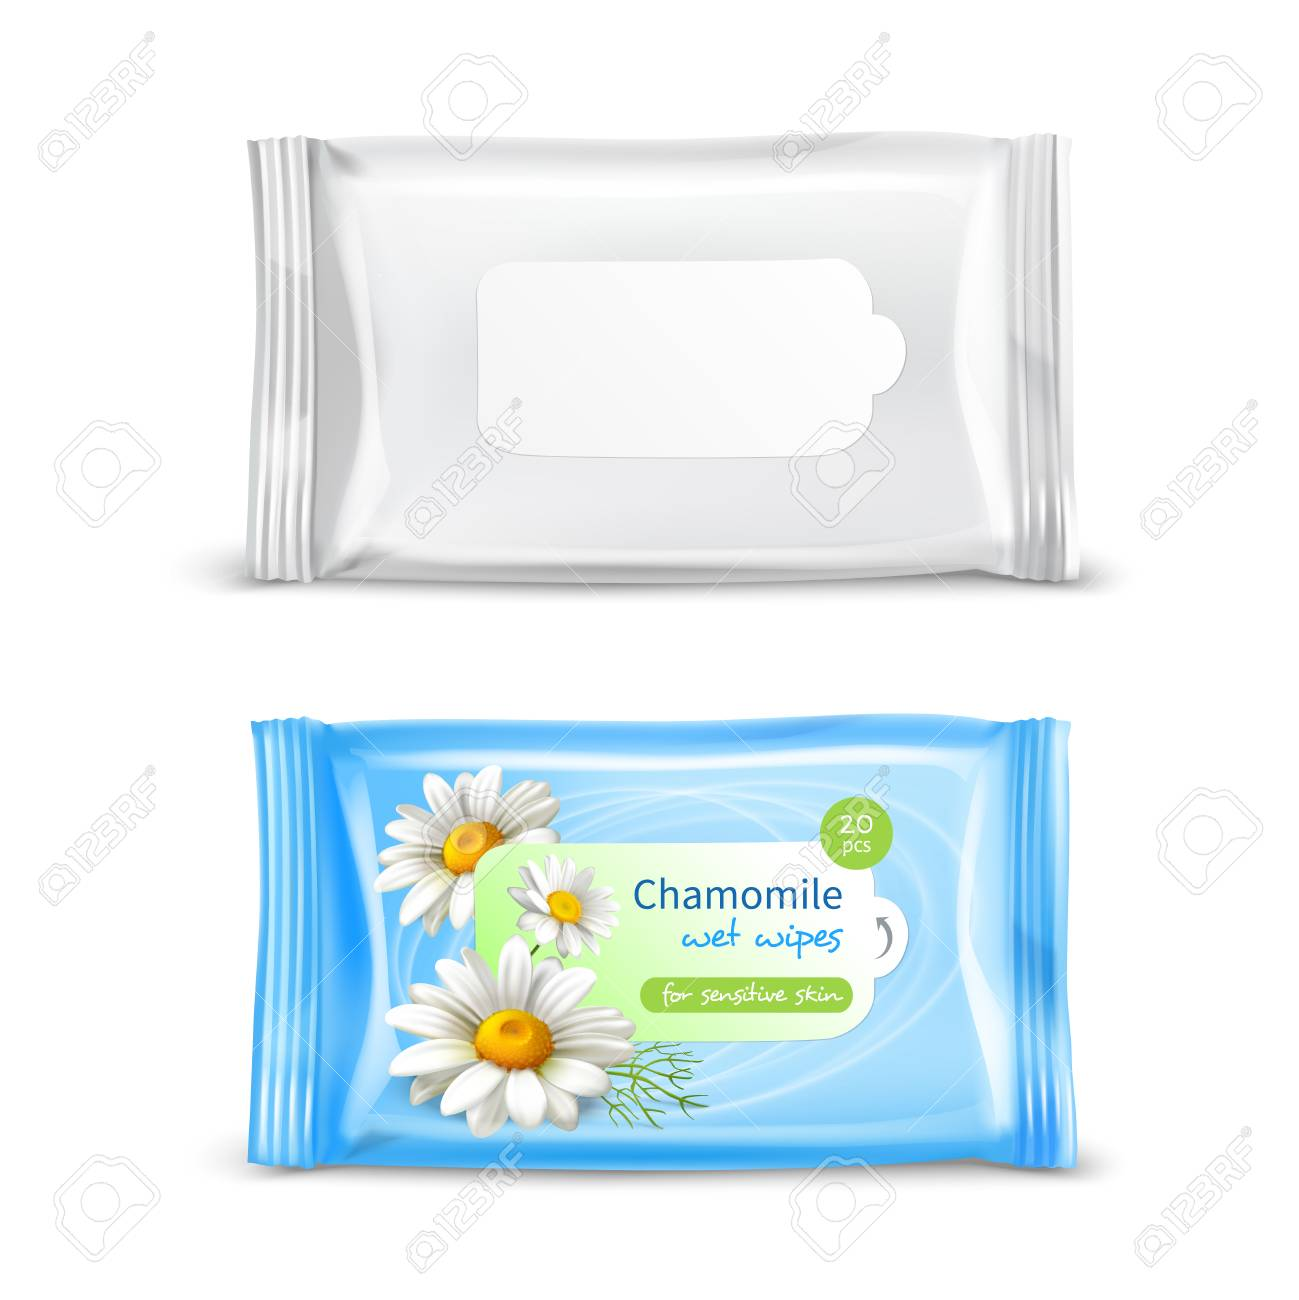 Chamomile wet wipes napkins for sensitive skin realistic package 2 views set isolated vector illustration - 99714255